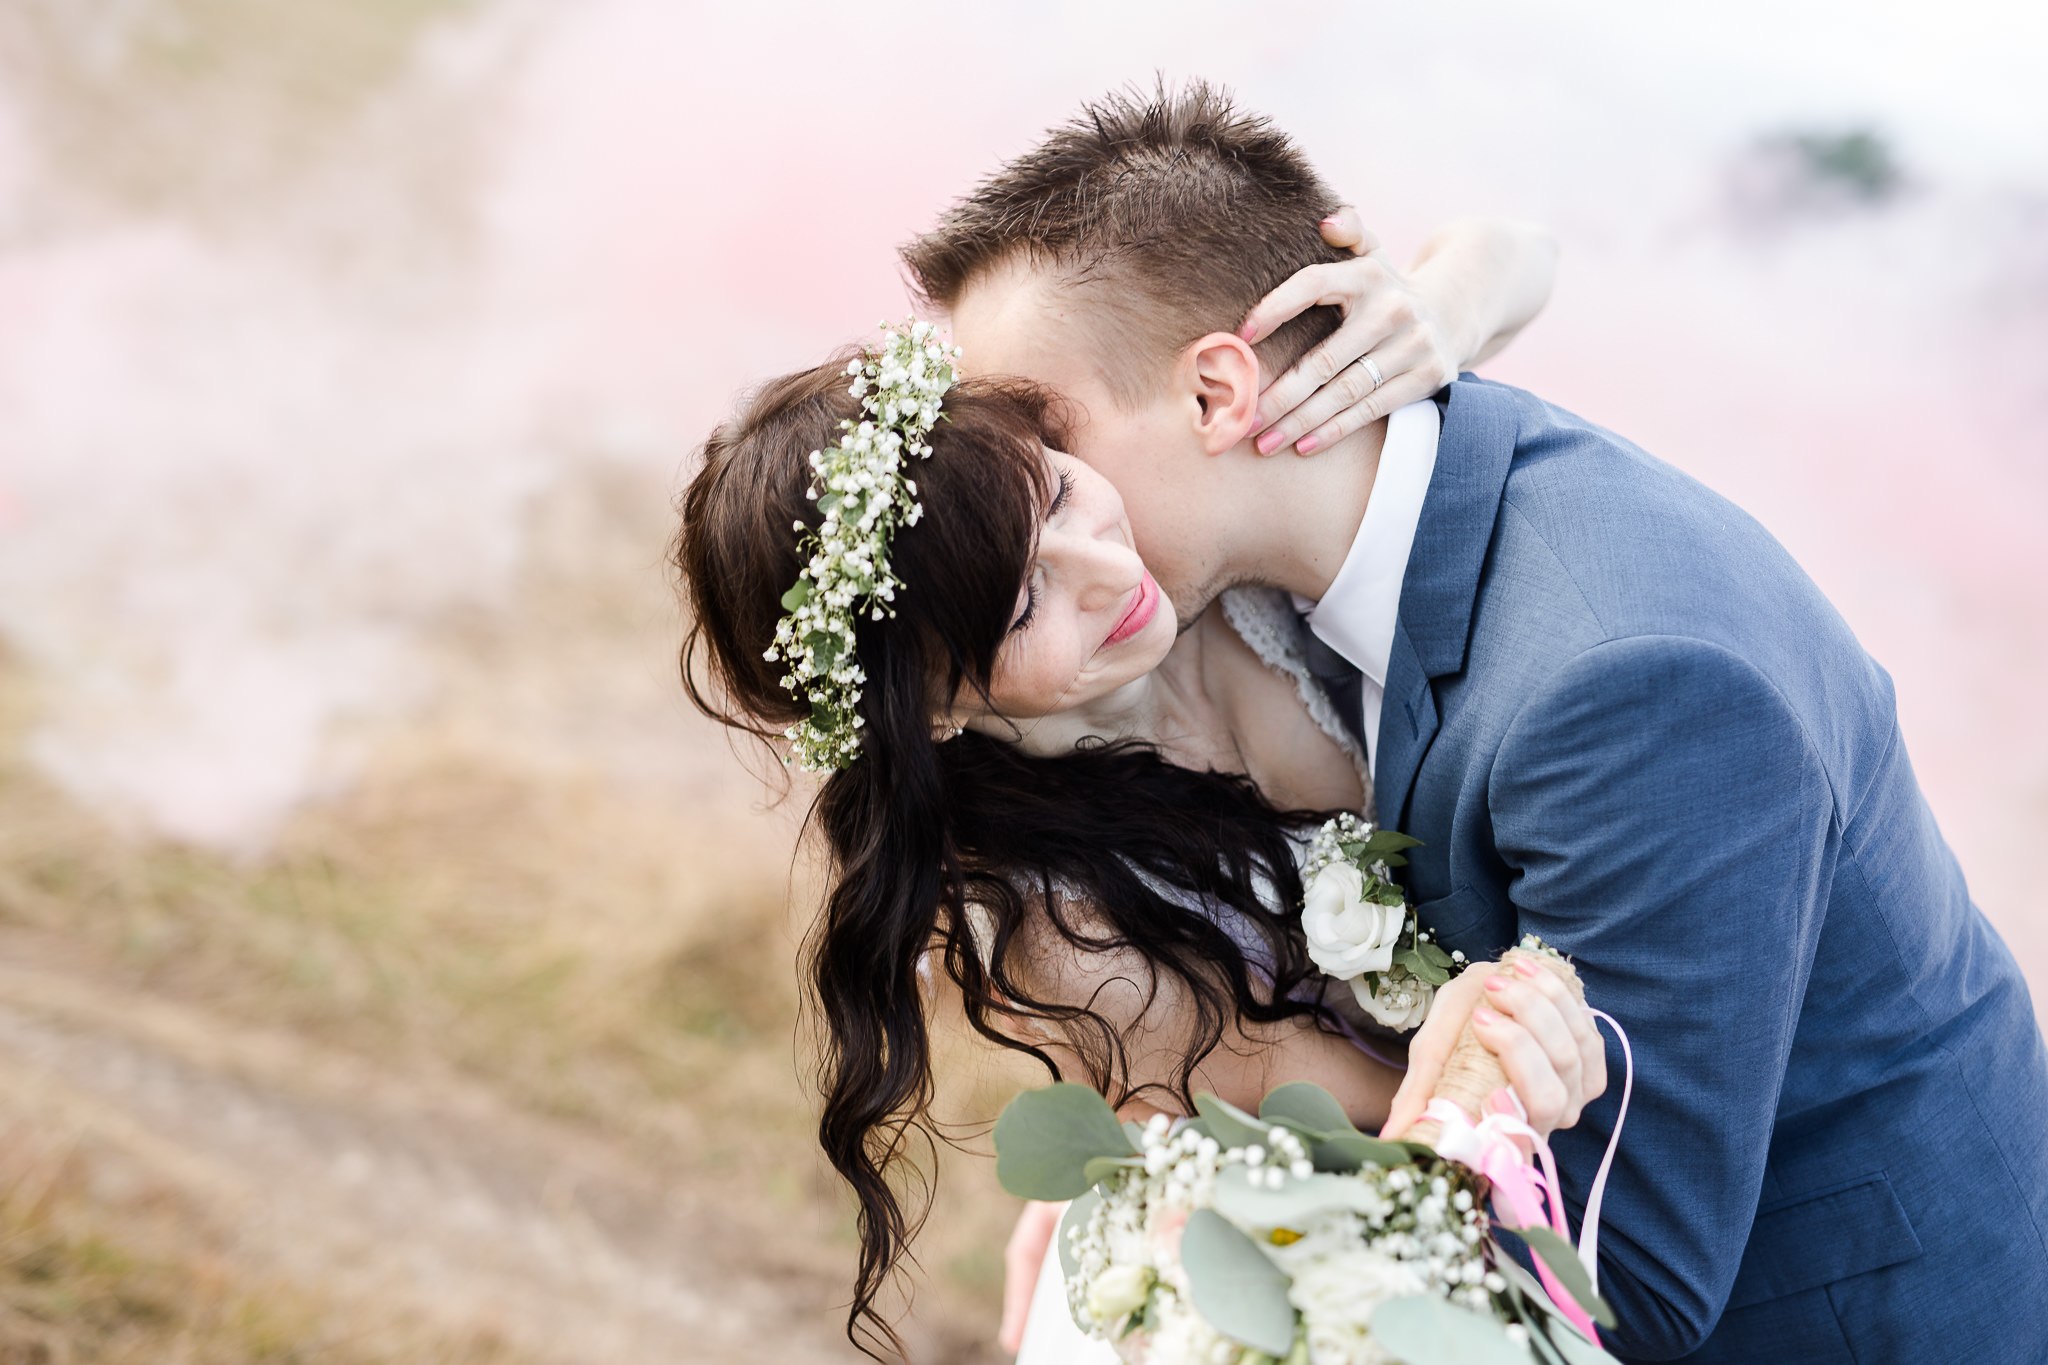 mariage champetre fumigene dammaries les lys